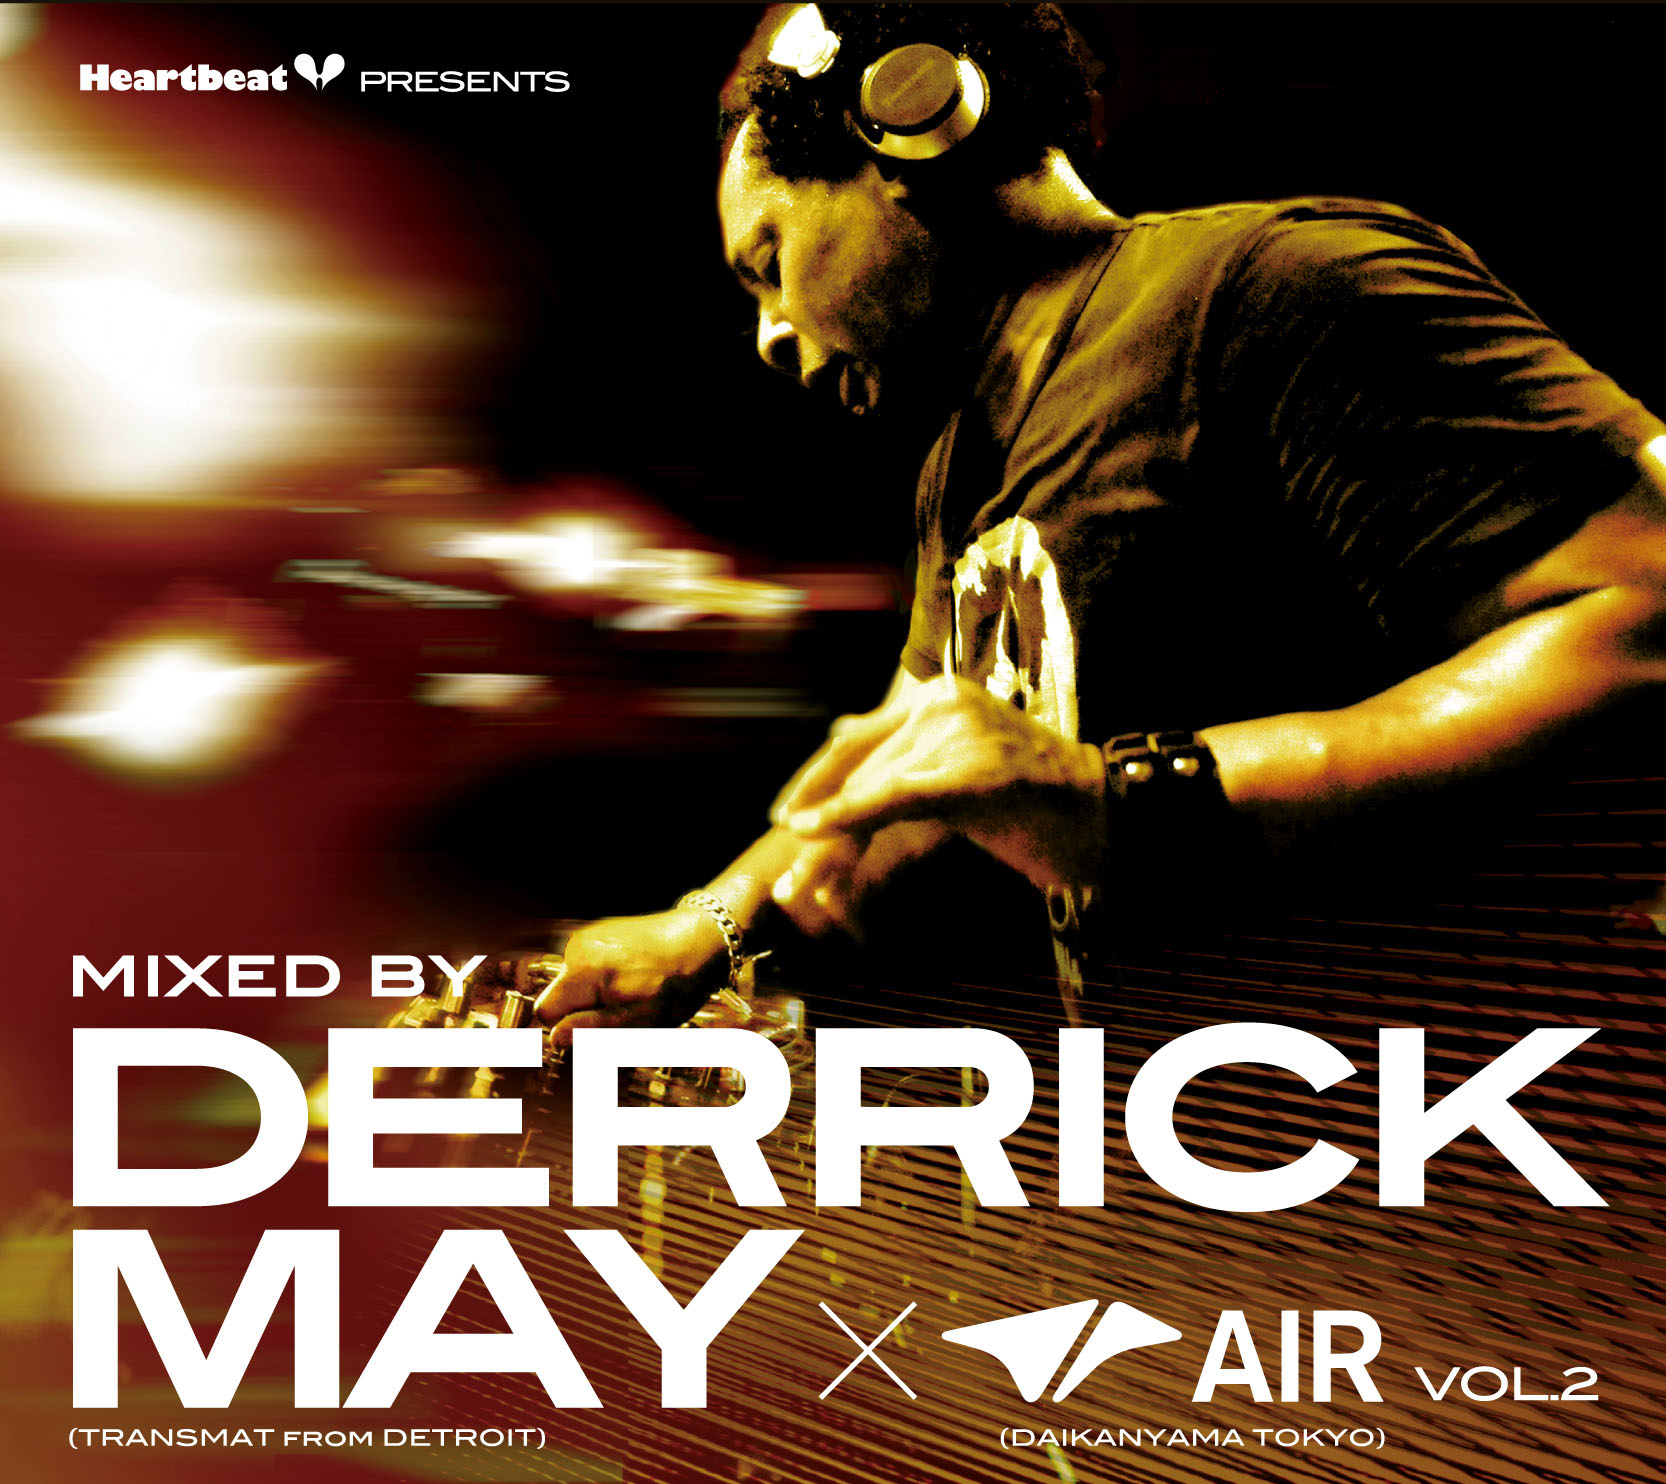 Derrick May Heartbeat Presents Mixed By Derrick May(TRANSMAT from DETROIT)×AIR(DAIKANYAMA TOKYO) Vol.2